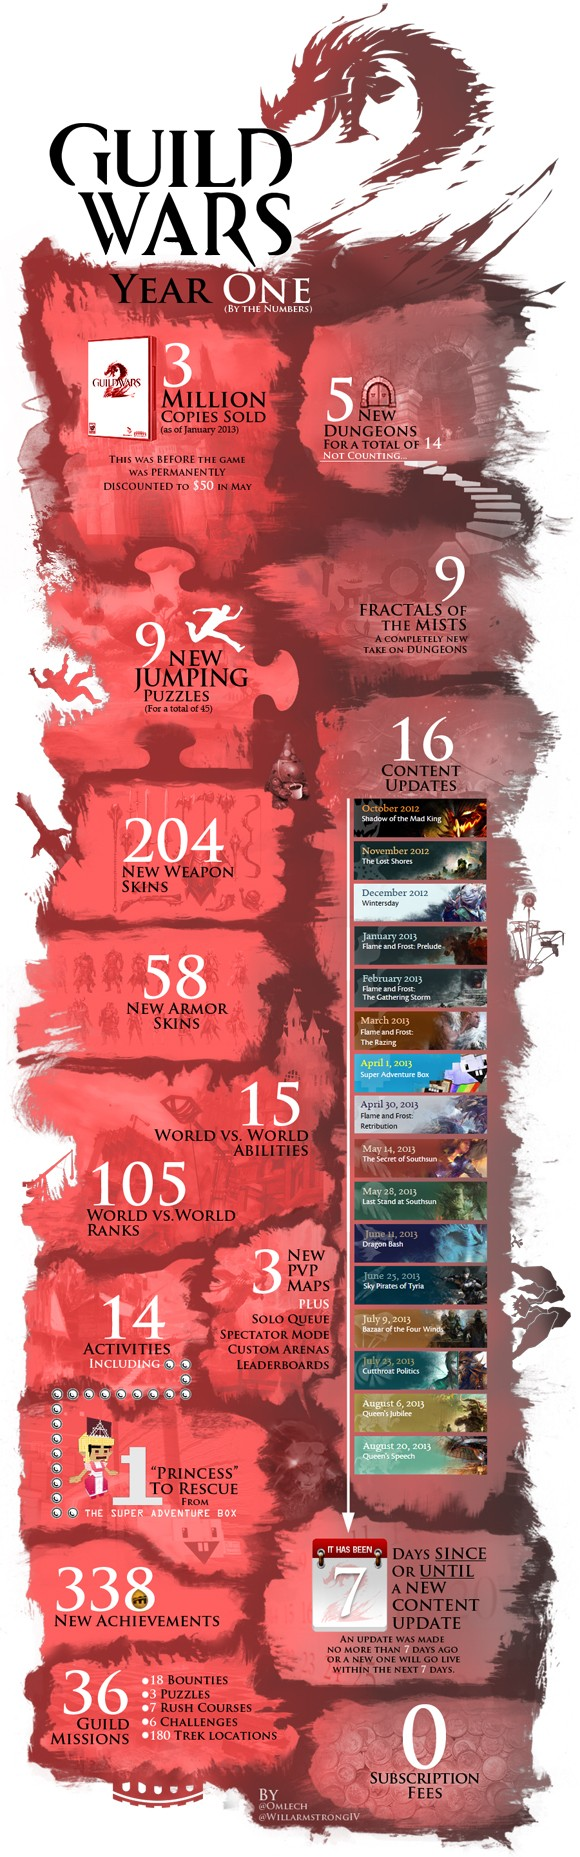 Fanmade infographic summarizes Guild Wars 2's first year